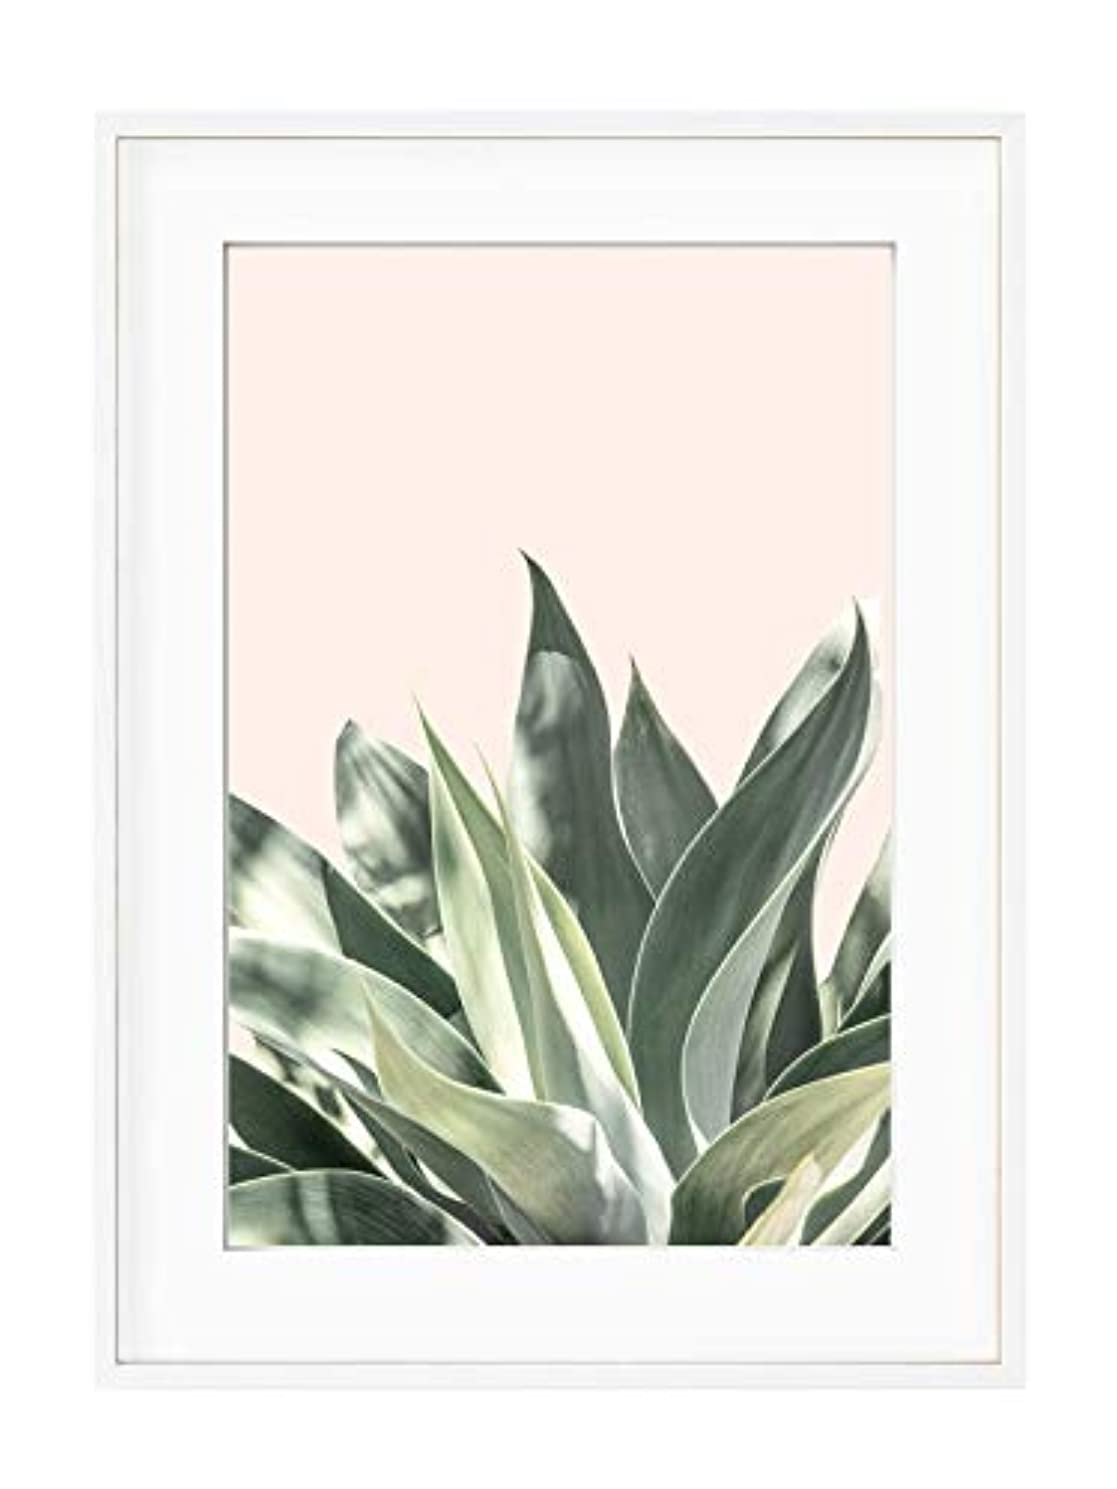 Aloe on a Pink Background with White Lacquer Wooden Frame and Mount, Multicolored, 50x70